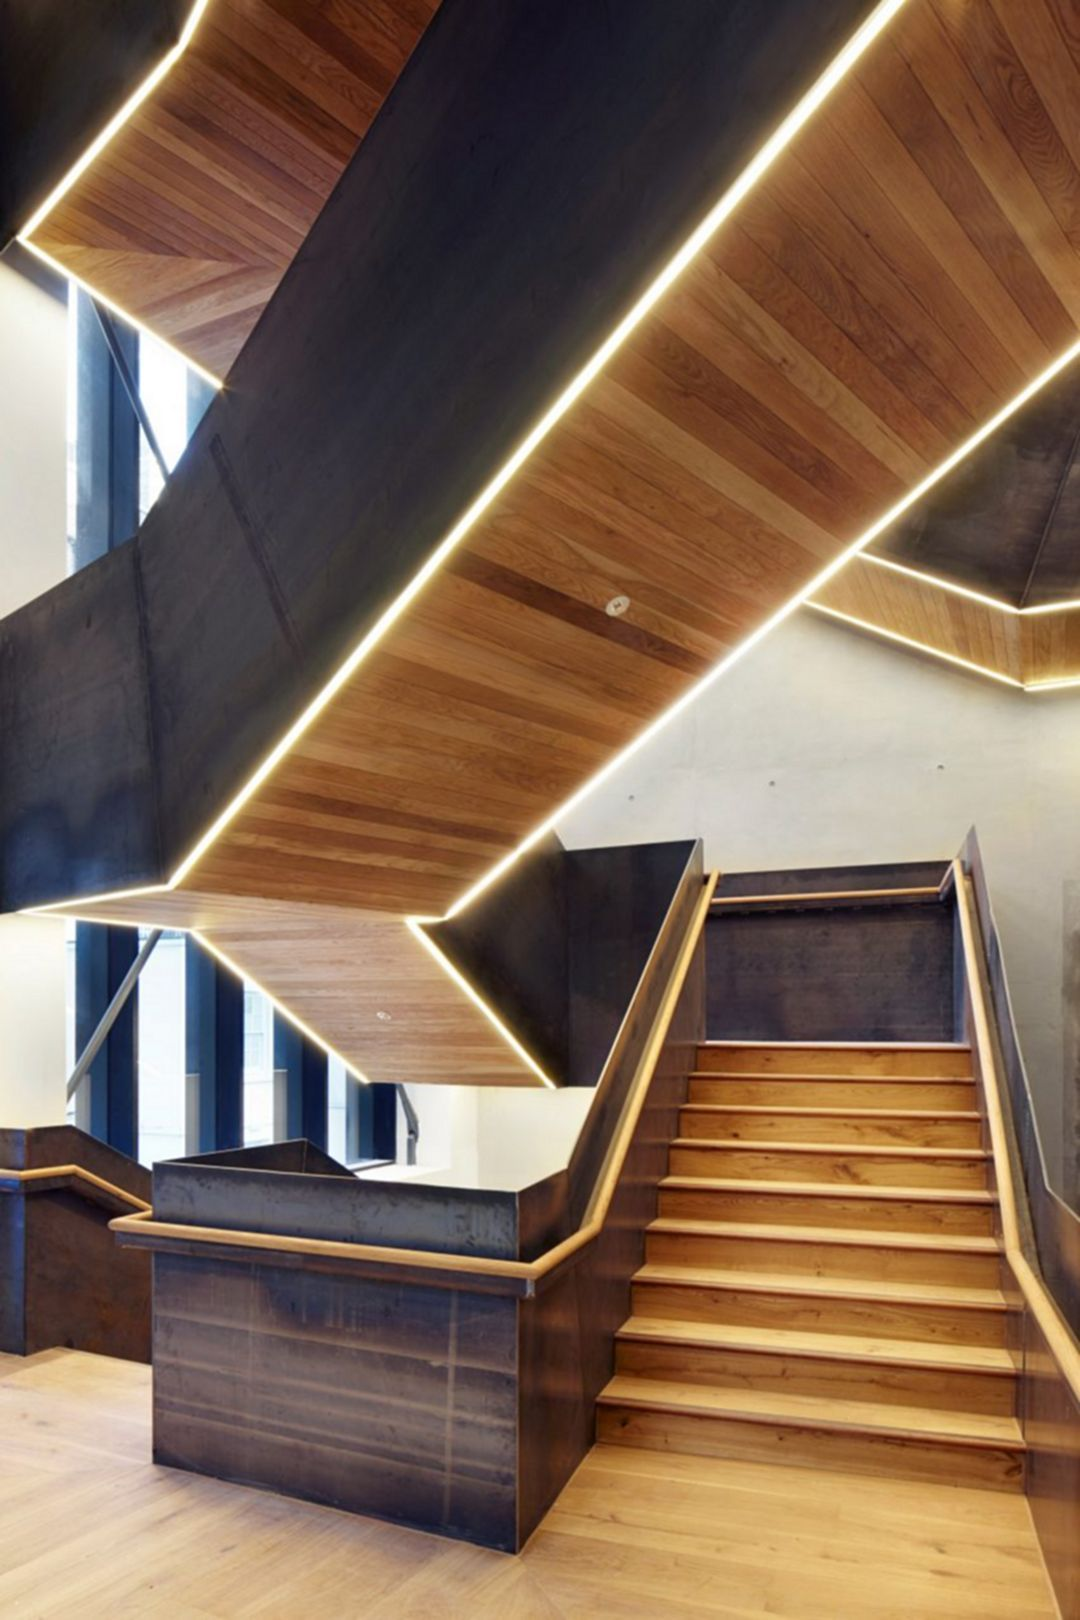 30 Awesome & Stunning Staircase Design Ideas for Your